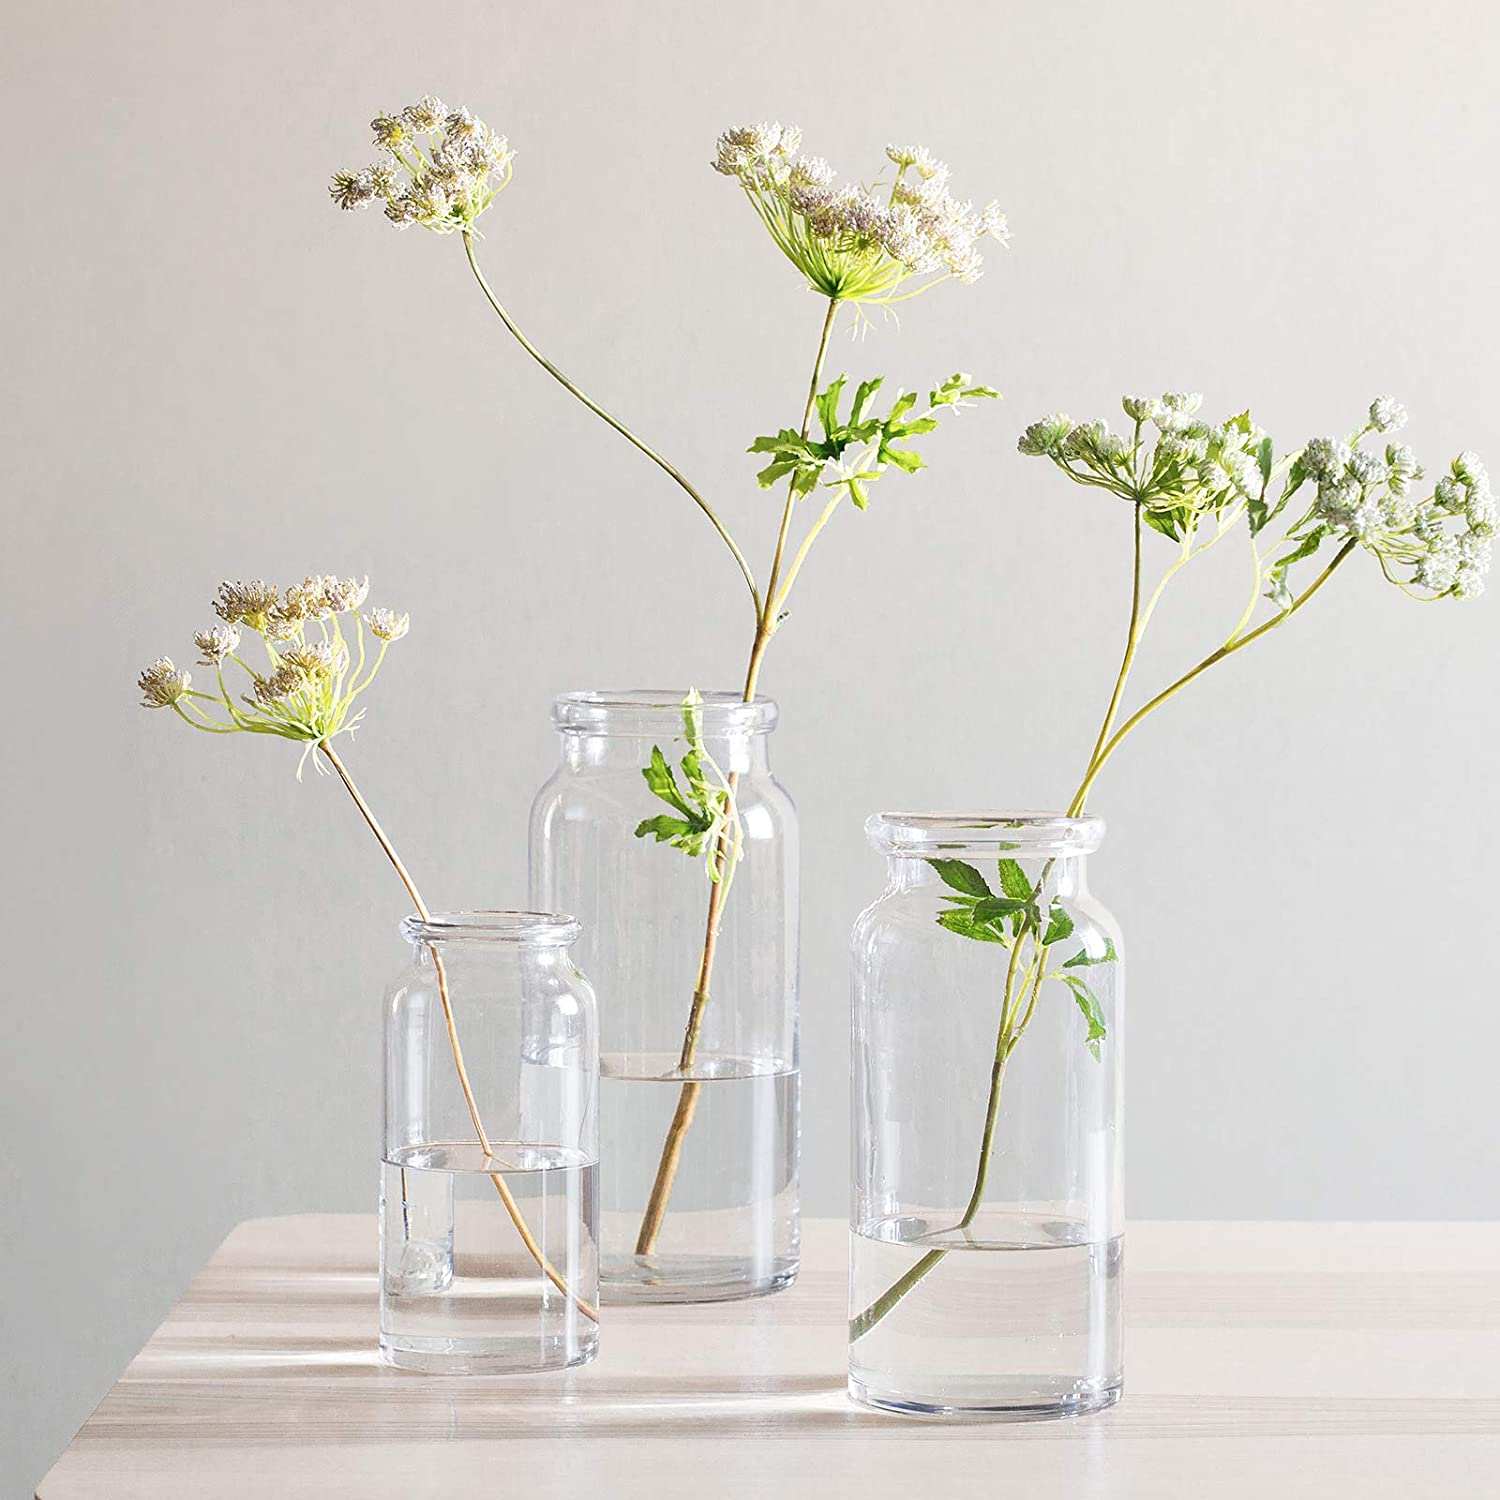 CASAMOTION Vases Hand Blown Art Glass Vase, Practical Centerpiece Vases for Table, Set of 3, Clear